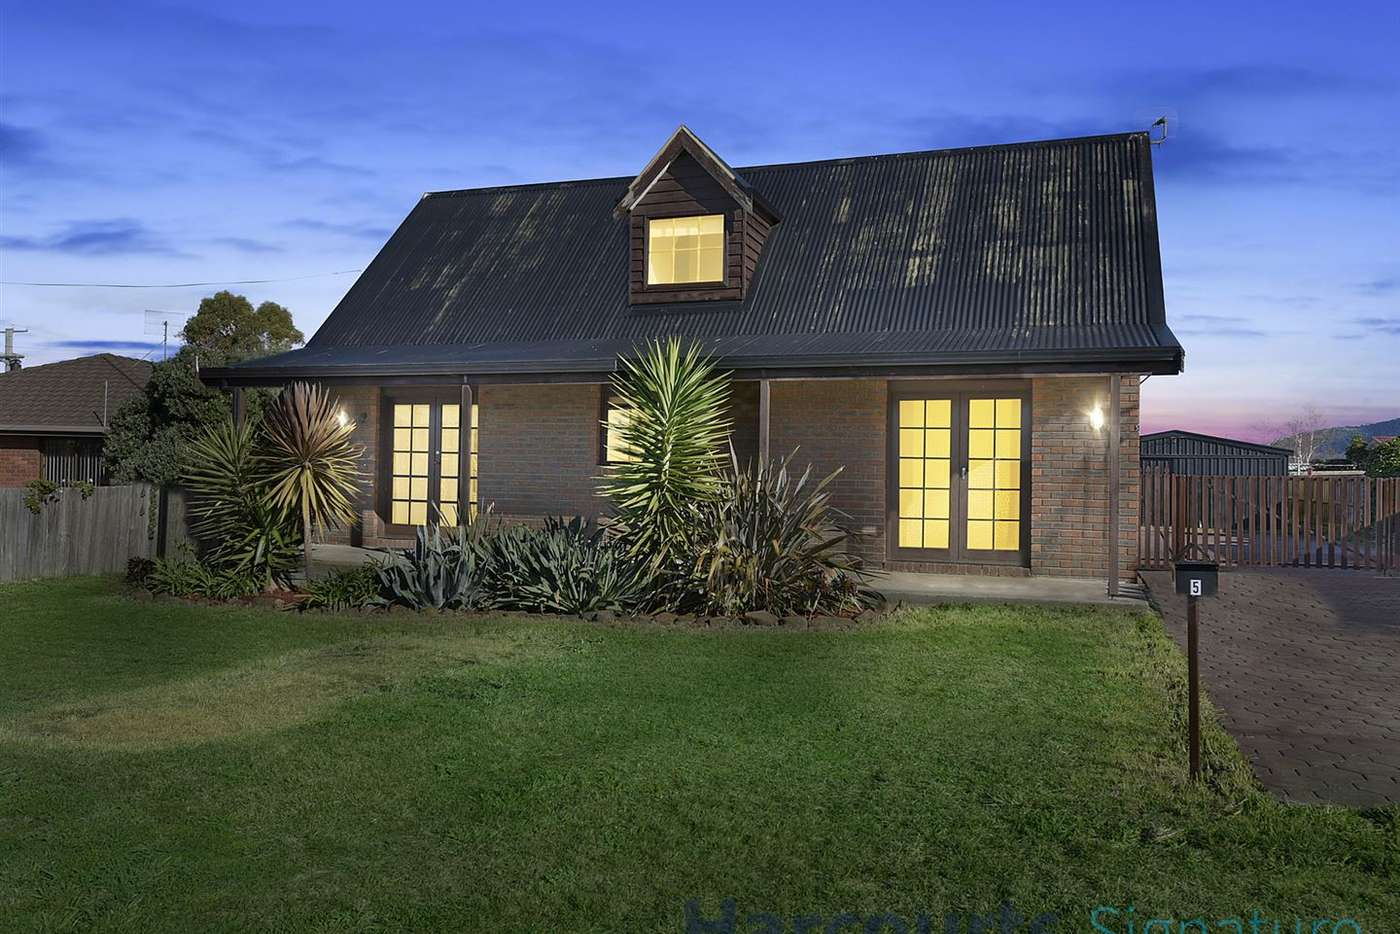 Main view of Homely house listing, 5 Frederick Street, Sorell TAS 7172